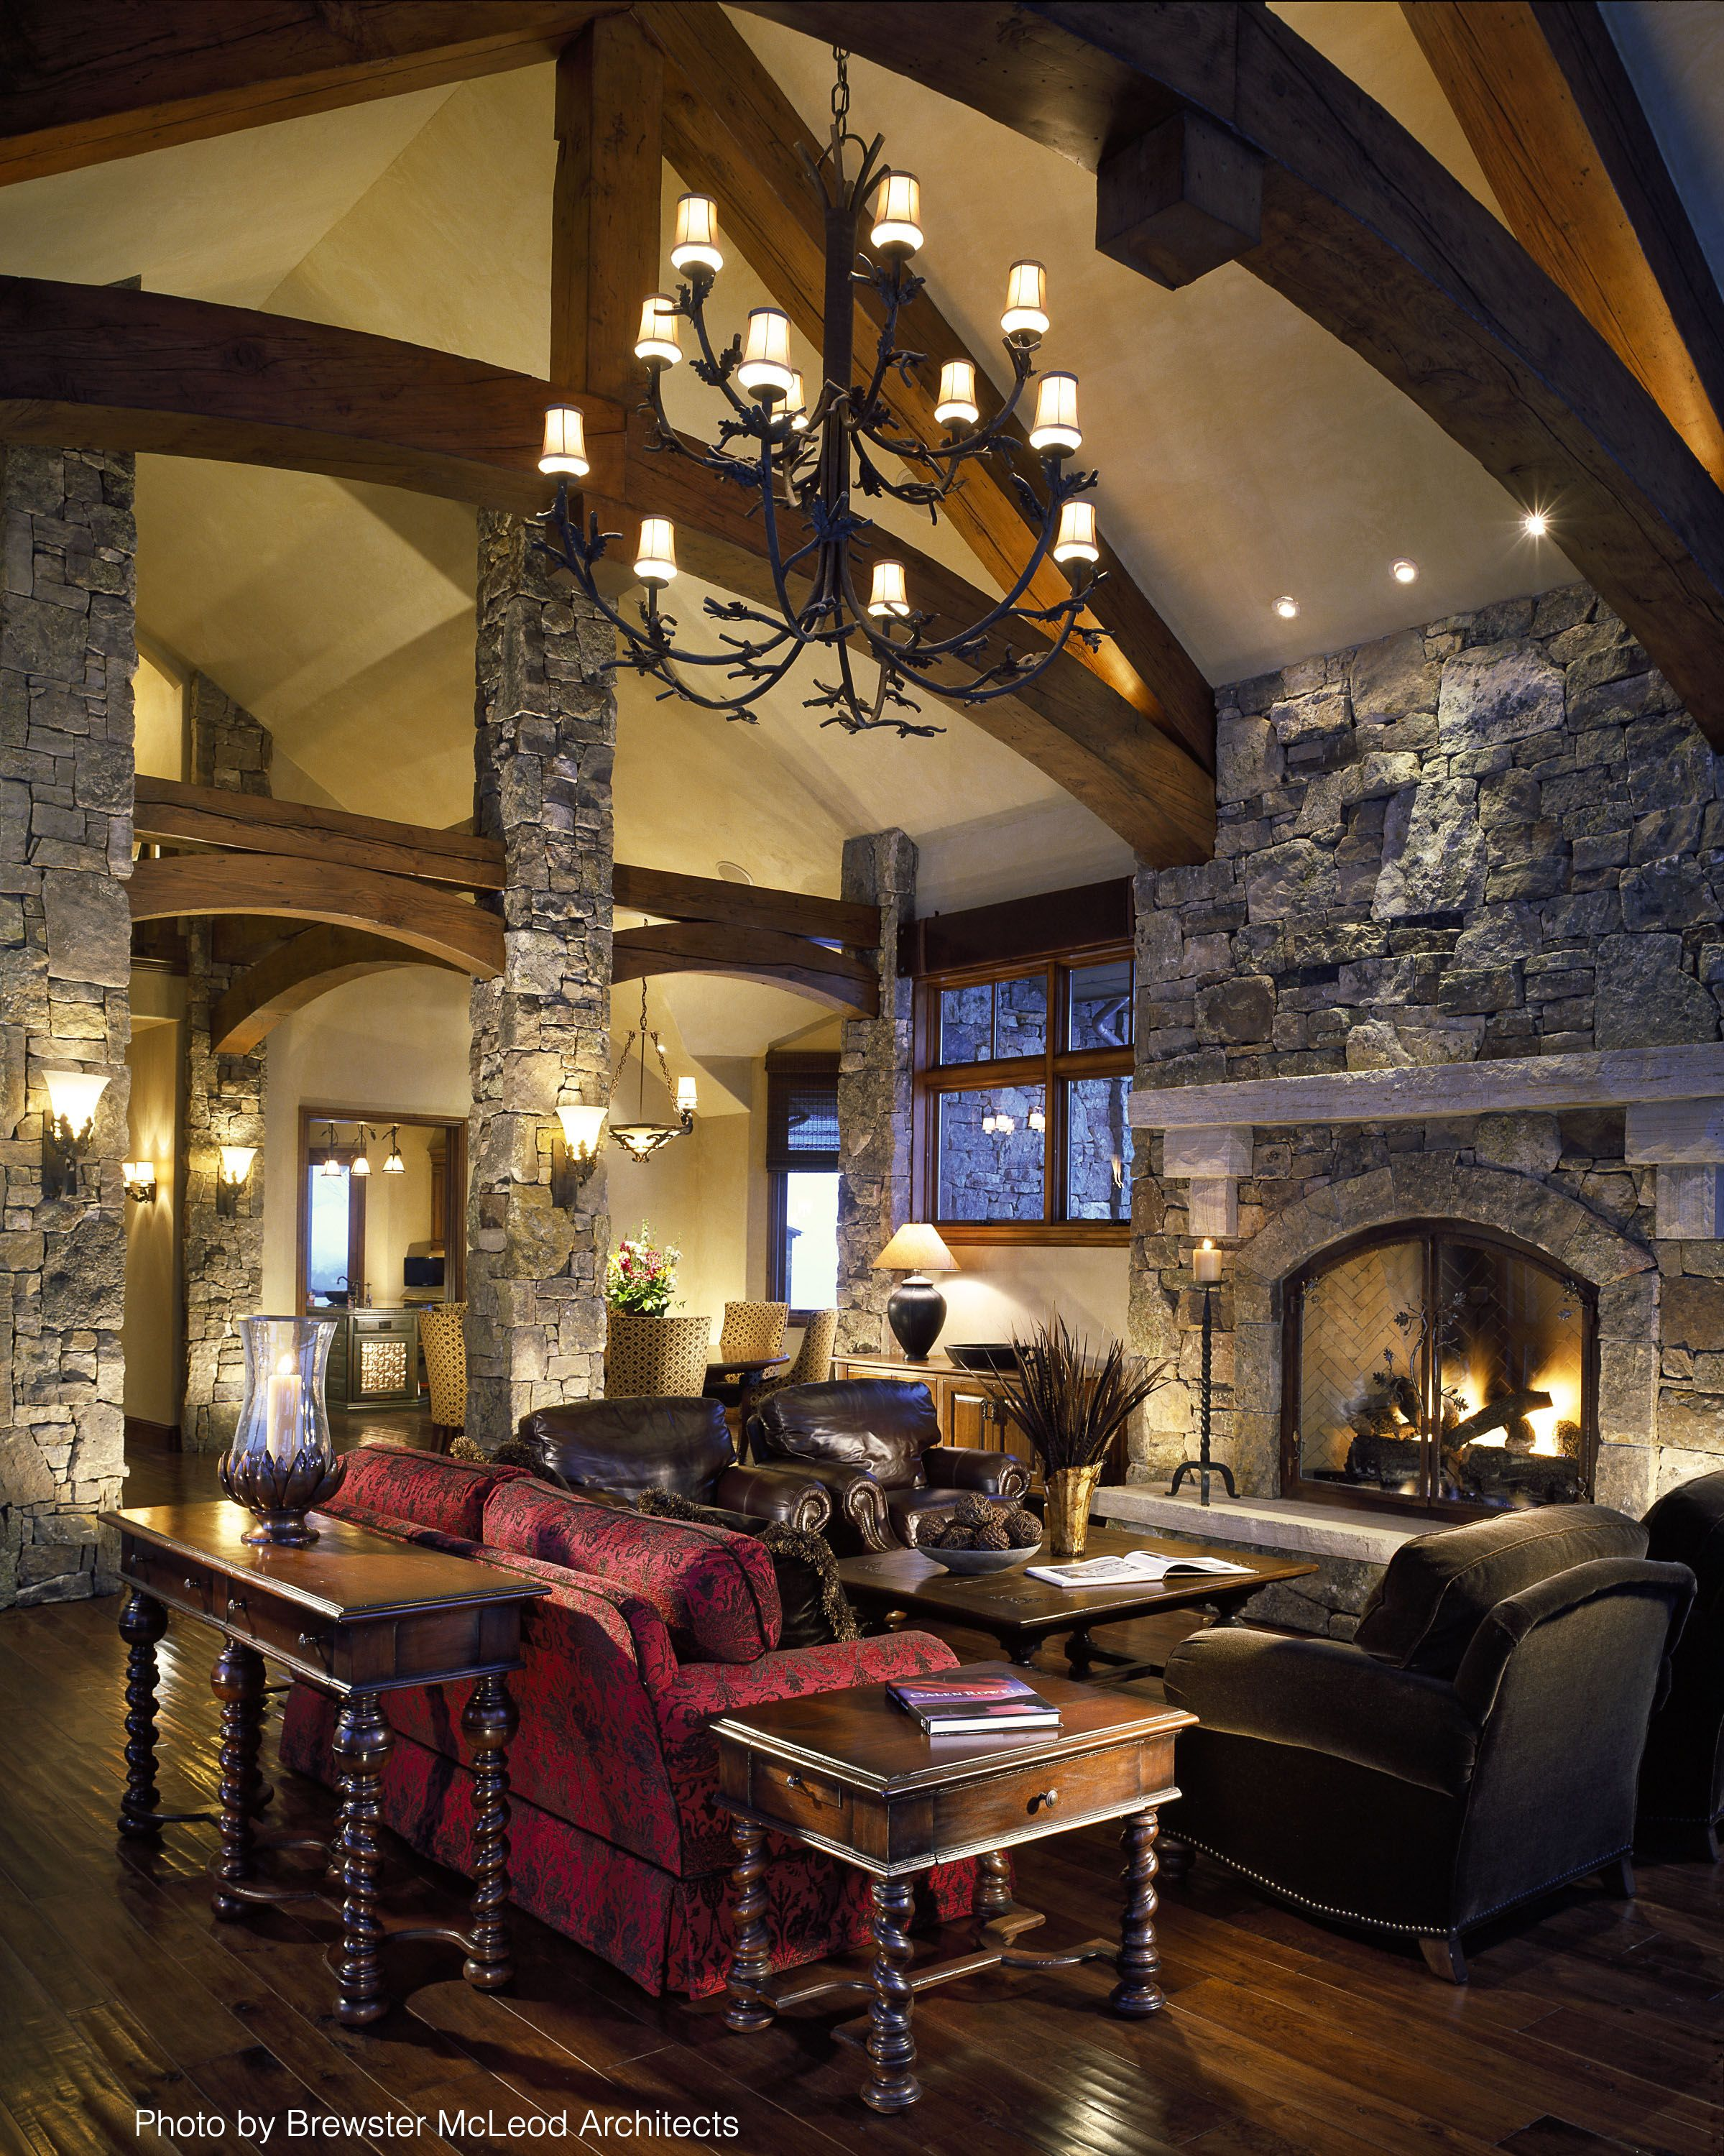 6 Hot Fireplace Design Ideas Cabin Chic Country Chic D